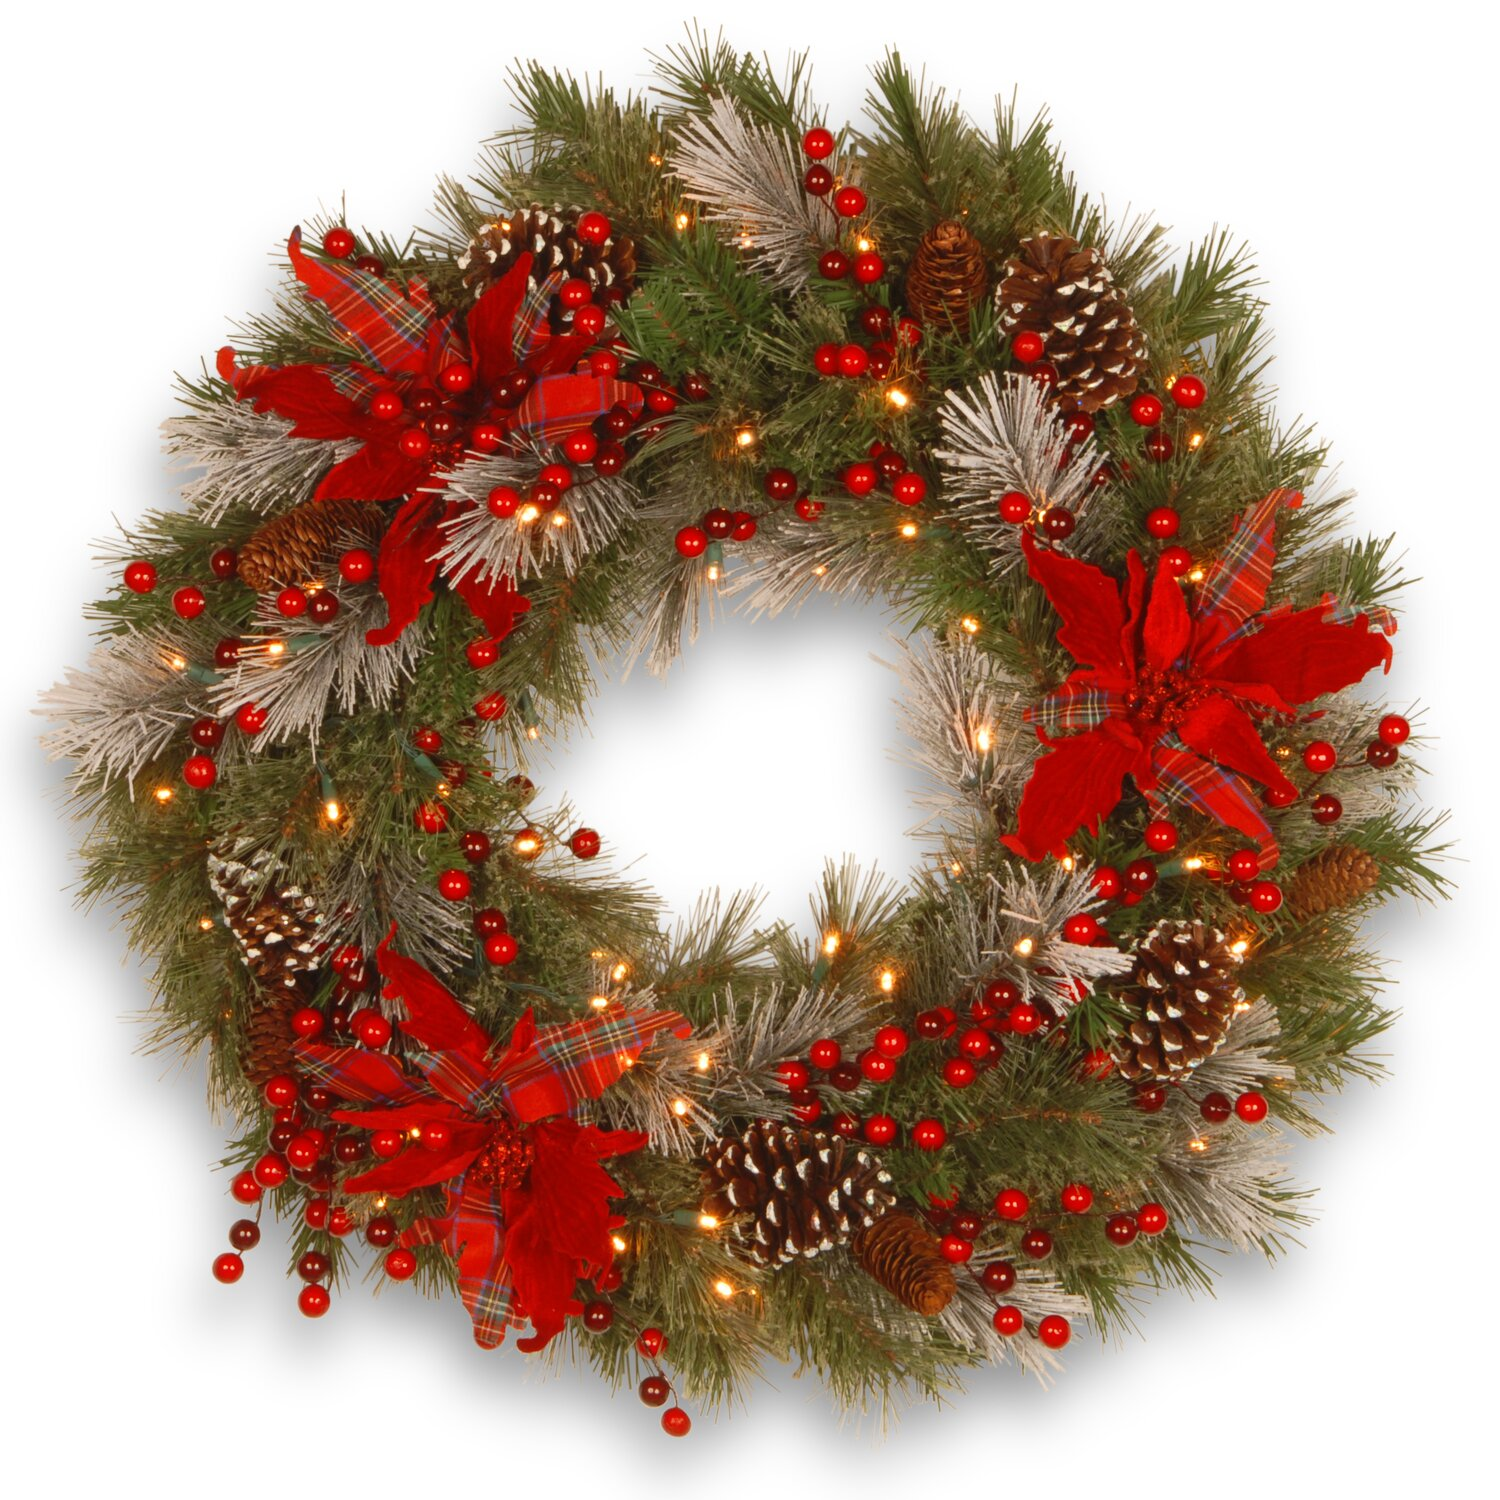 Decorative Pre-Lit Tartan Plaid Wreath with 50 Battery-Operated White LED Lights